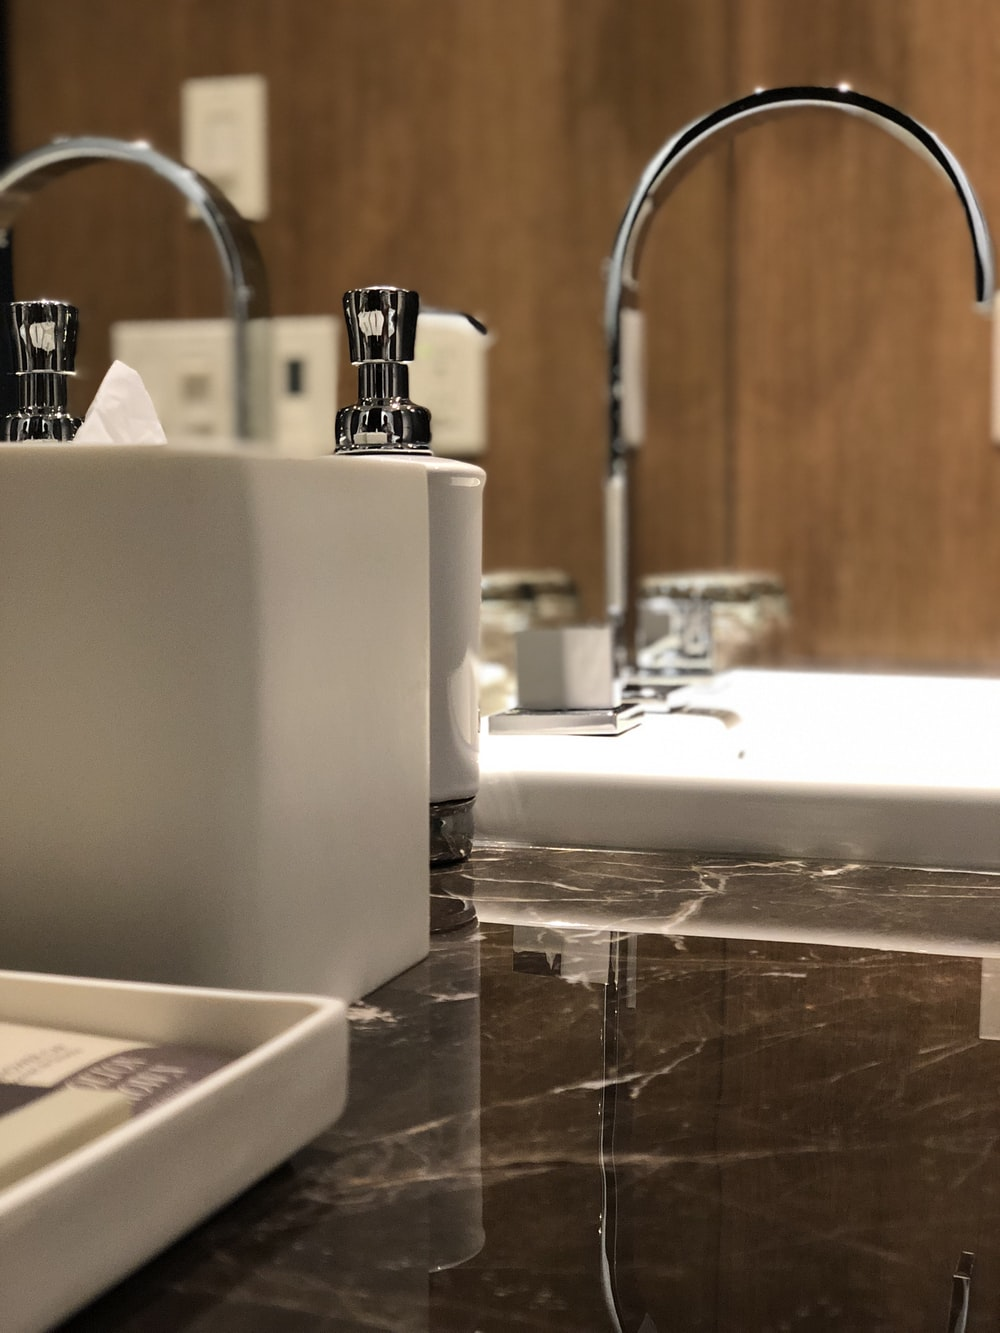 bathroom canisters beside stainless steel faucet